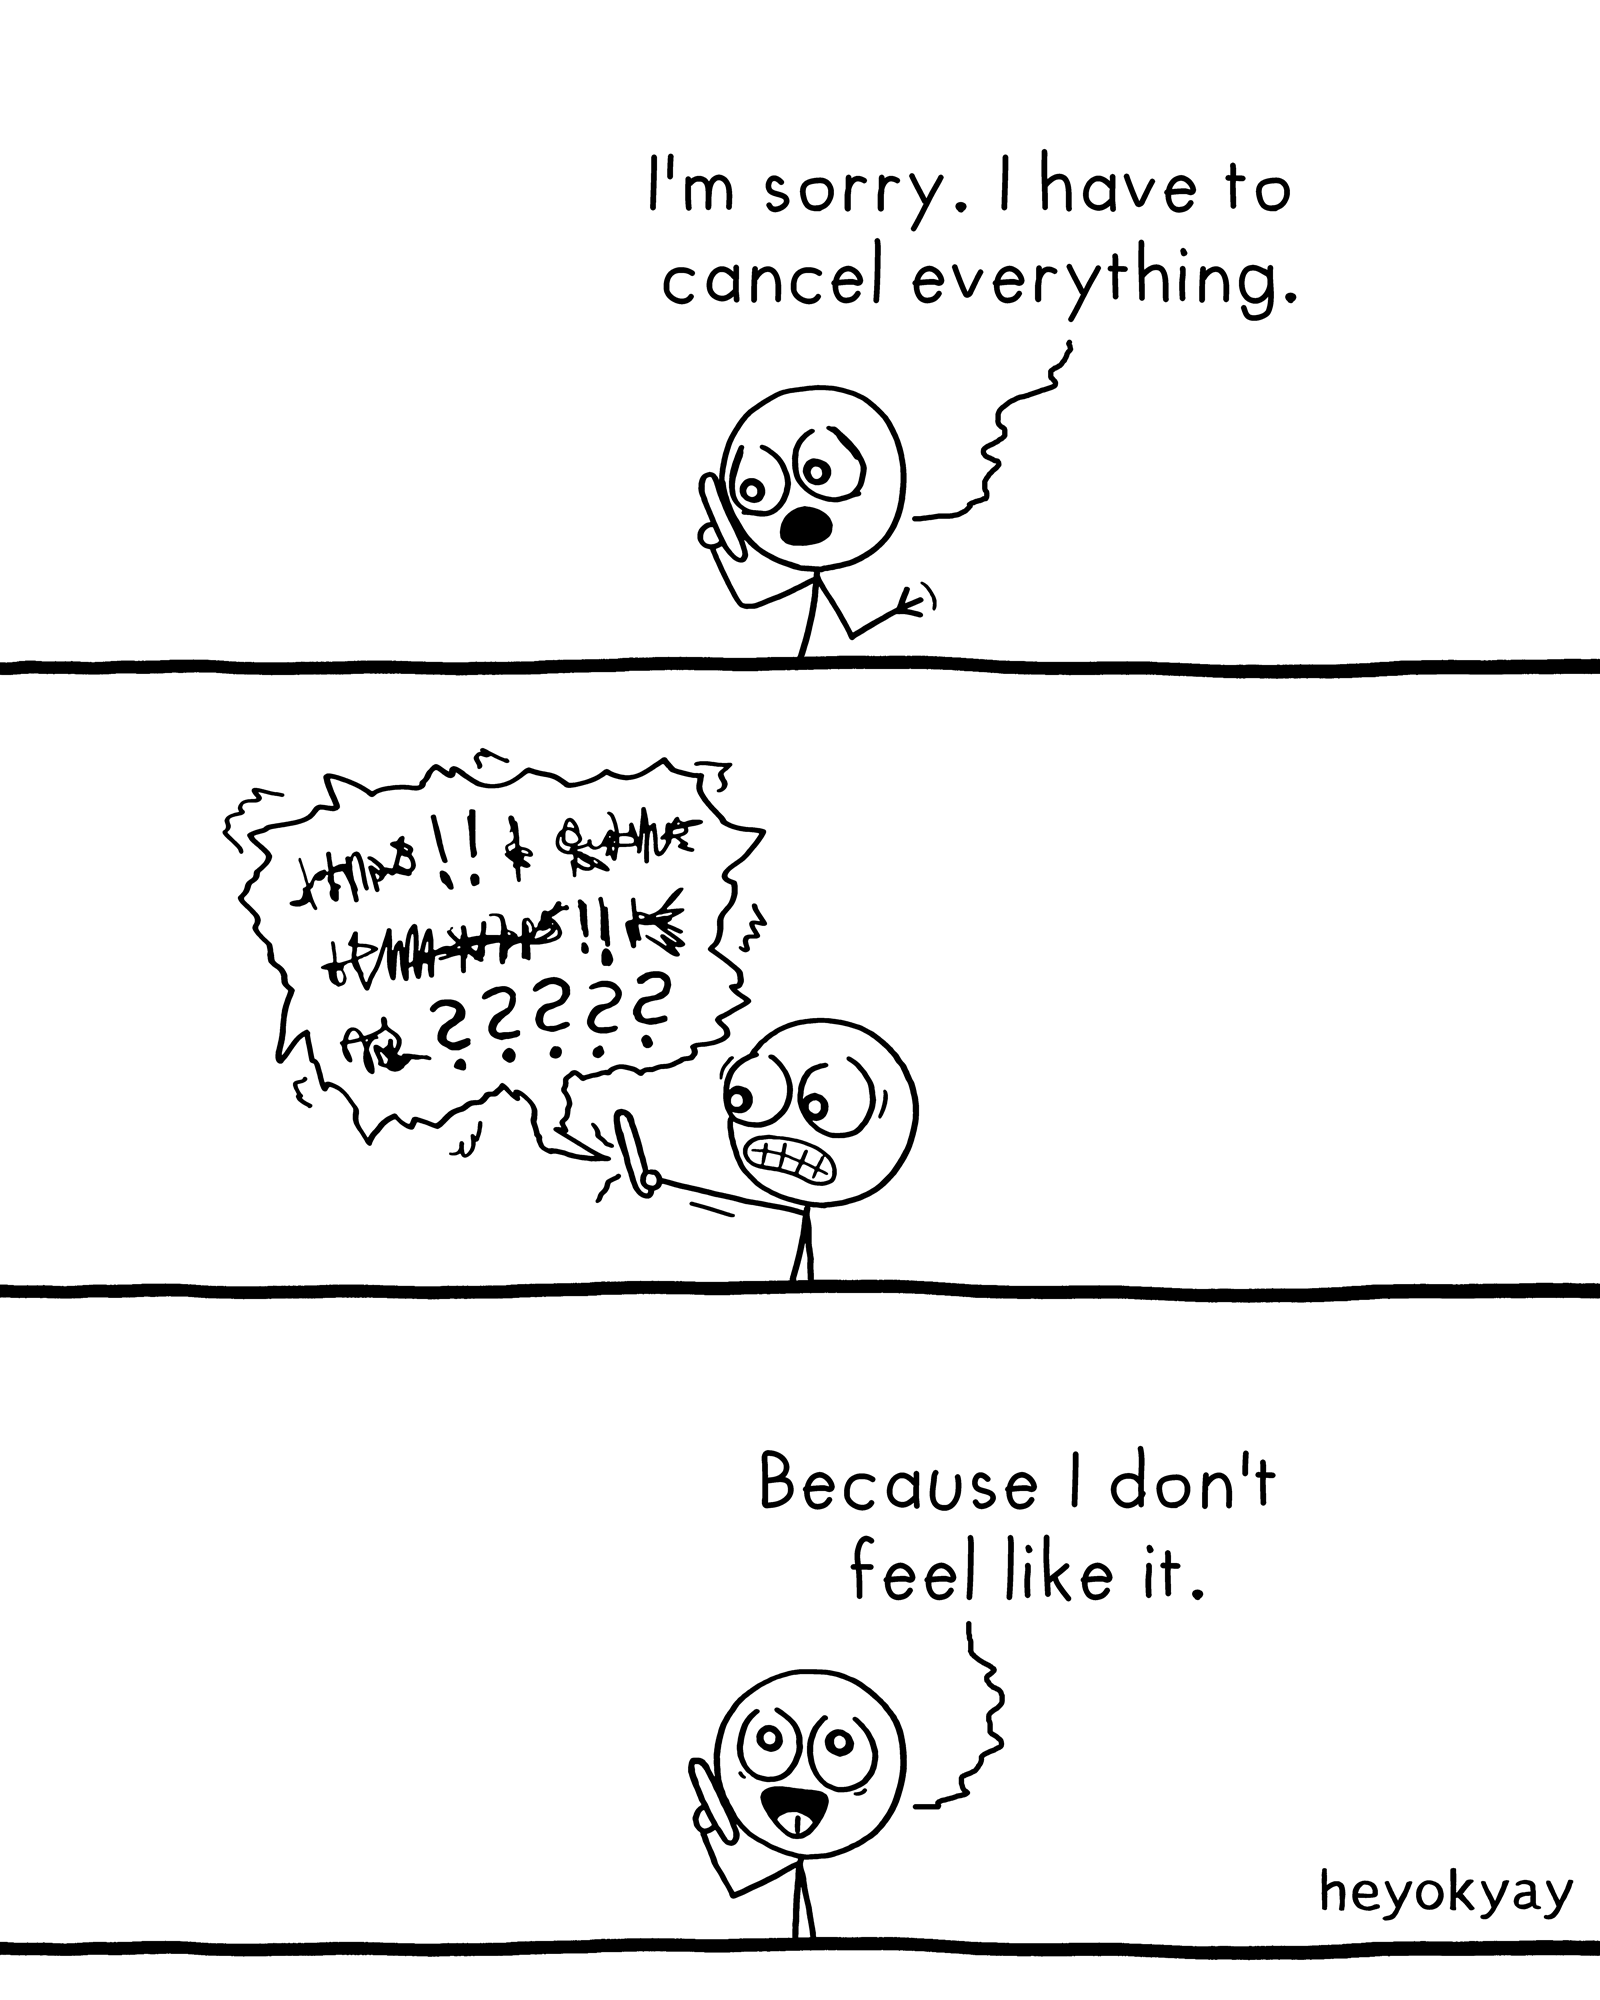 Cancellation heyokyay comic